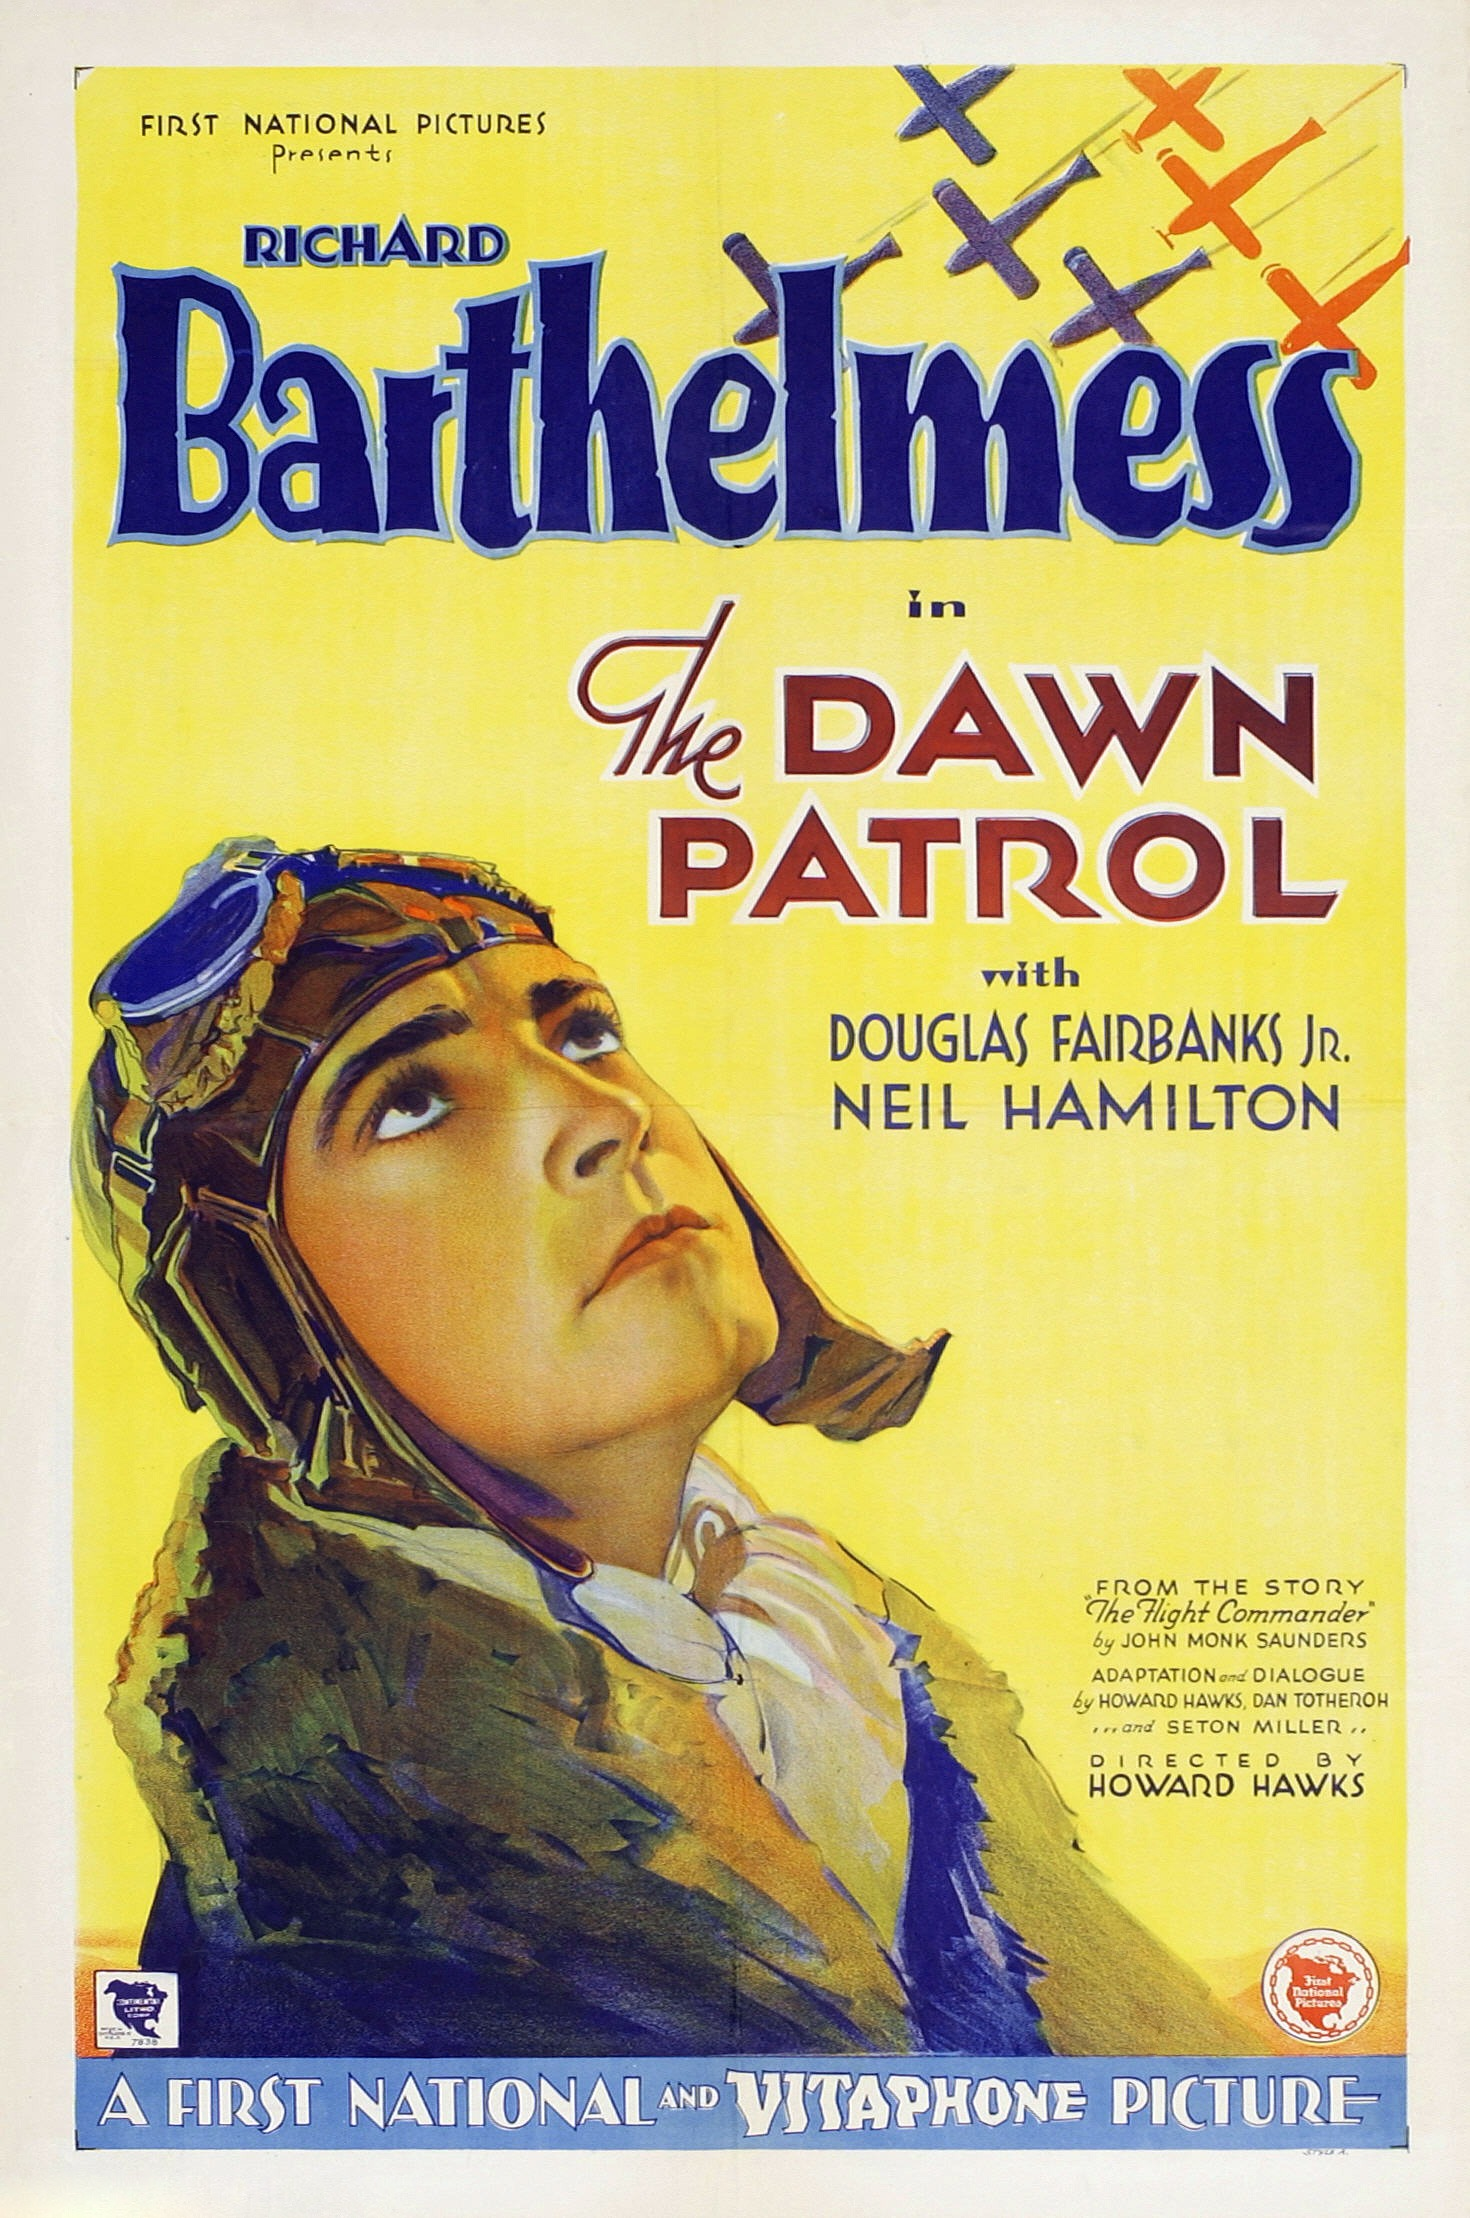 http://static.tvtropes.org/pmwiki/pub/images/poster_dawn_patrol_the_1930_01.jpg